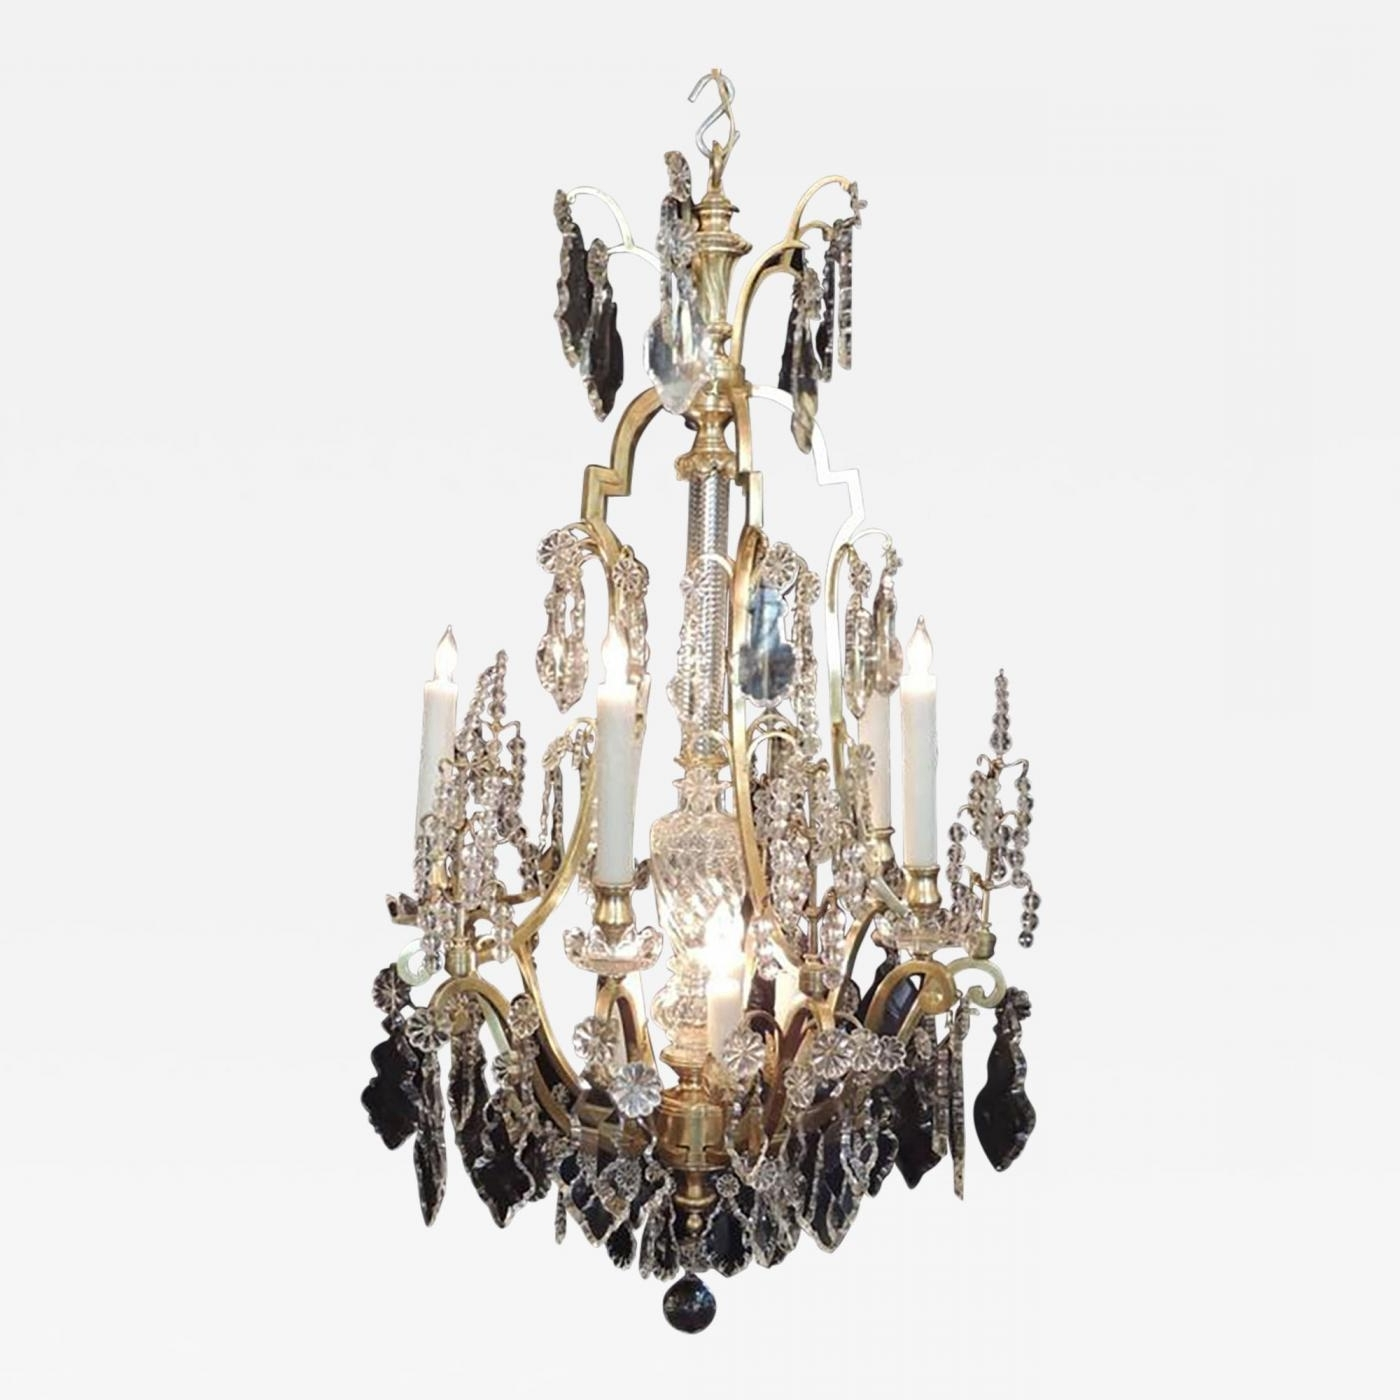 Early 20Th C French Bronze Doré And Lead Crystal Chandelier Throughout Popular Lead Crystal Chandelier (View 5 of 15)